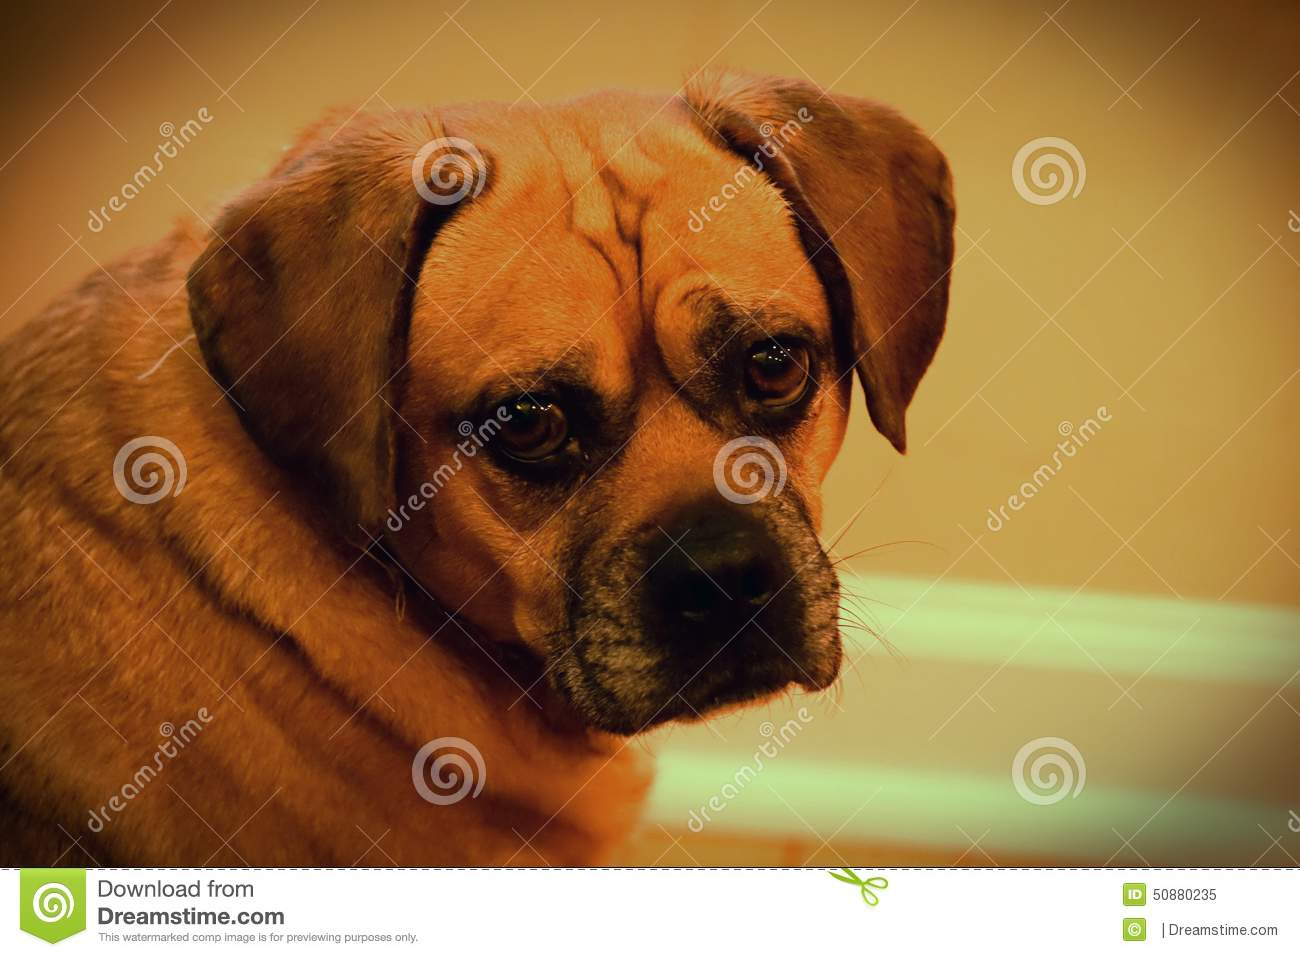 Cute Funny Silly Adorable Puggle Dog Stock Photo - Image: 50880235